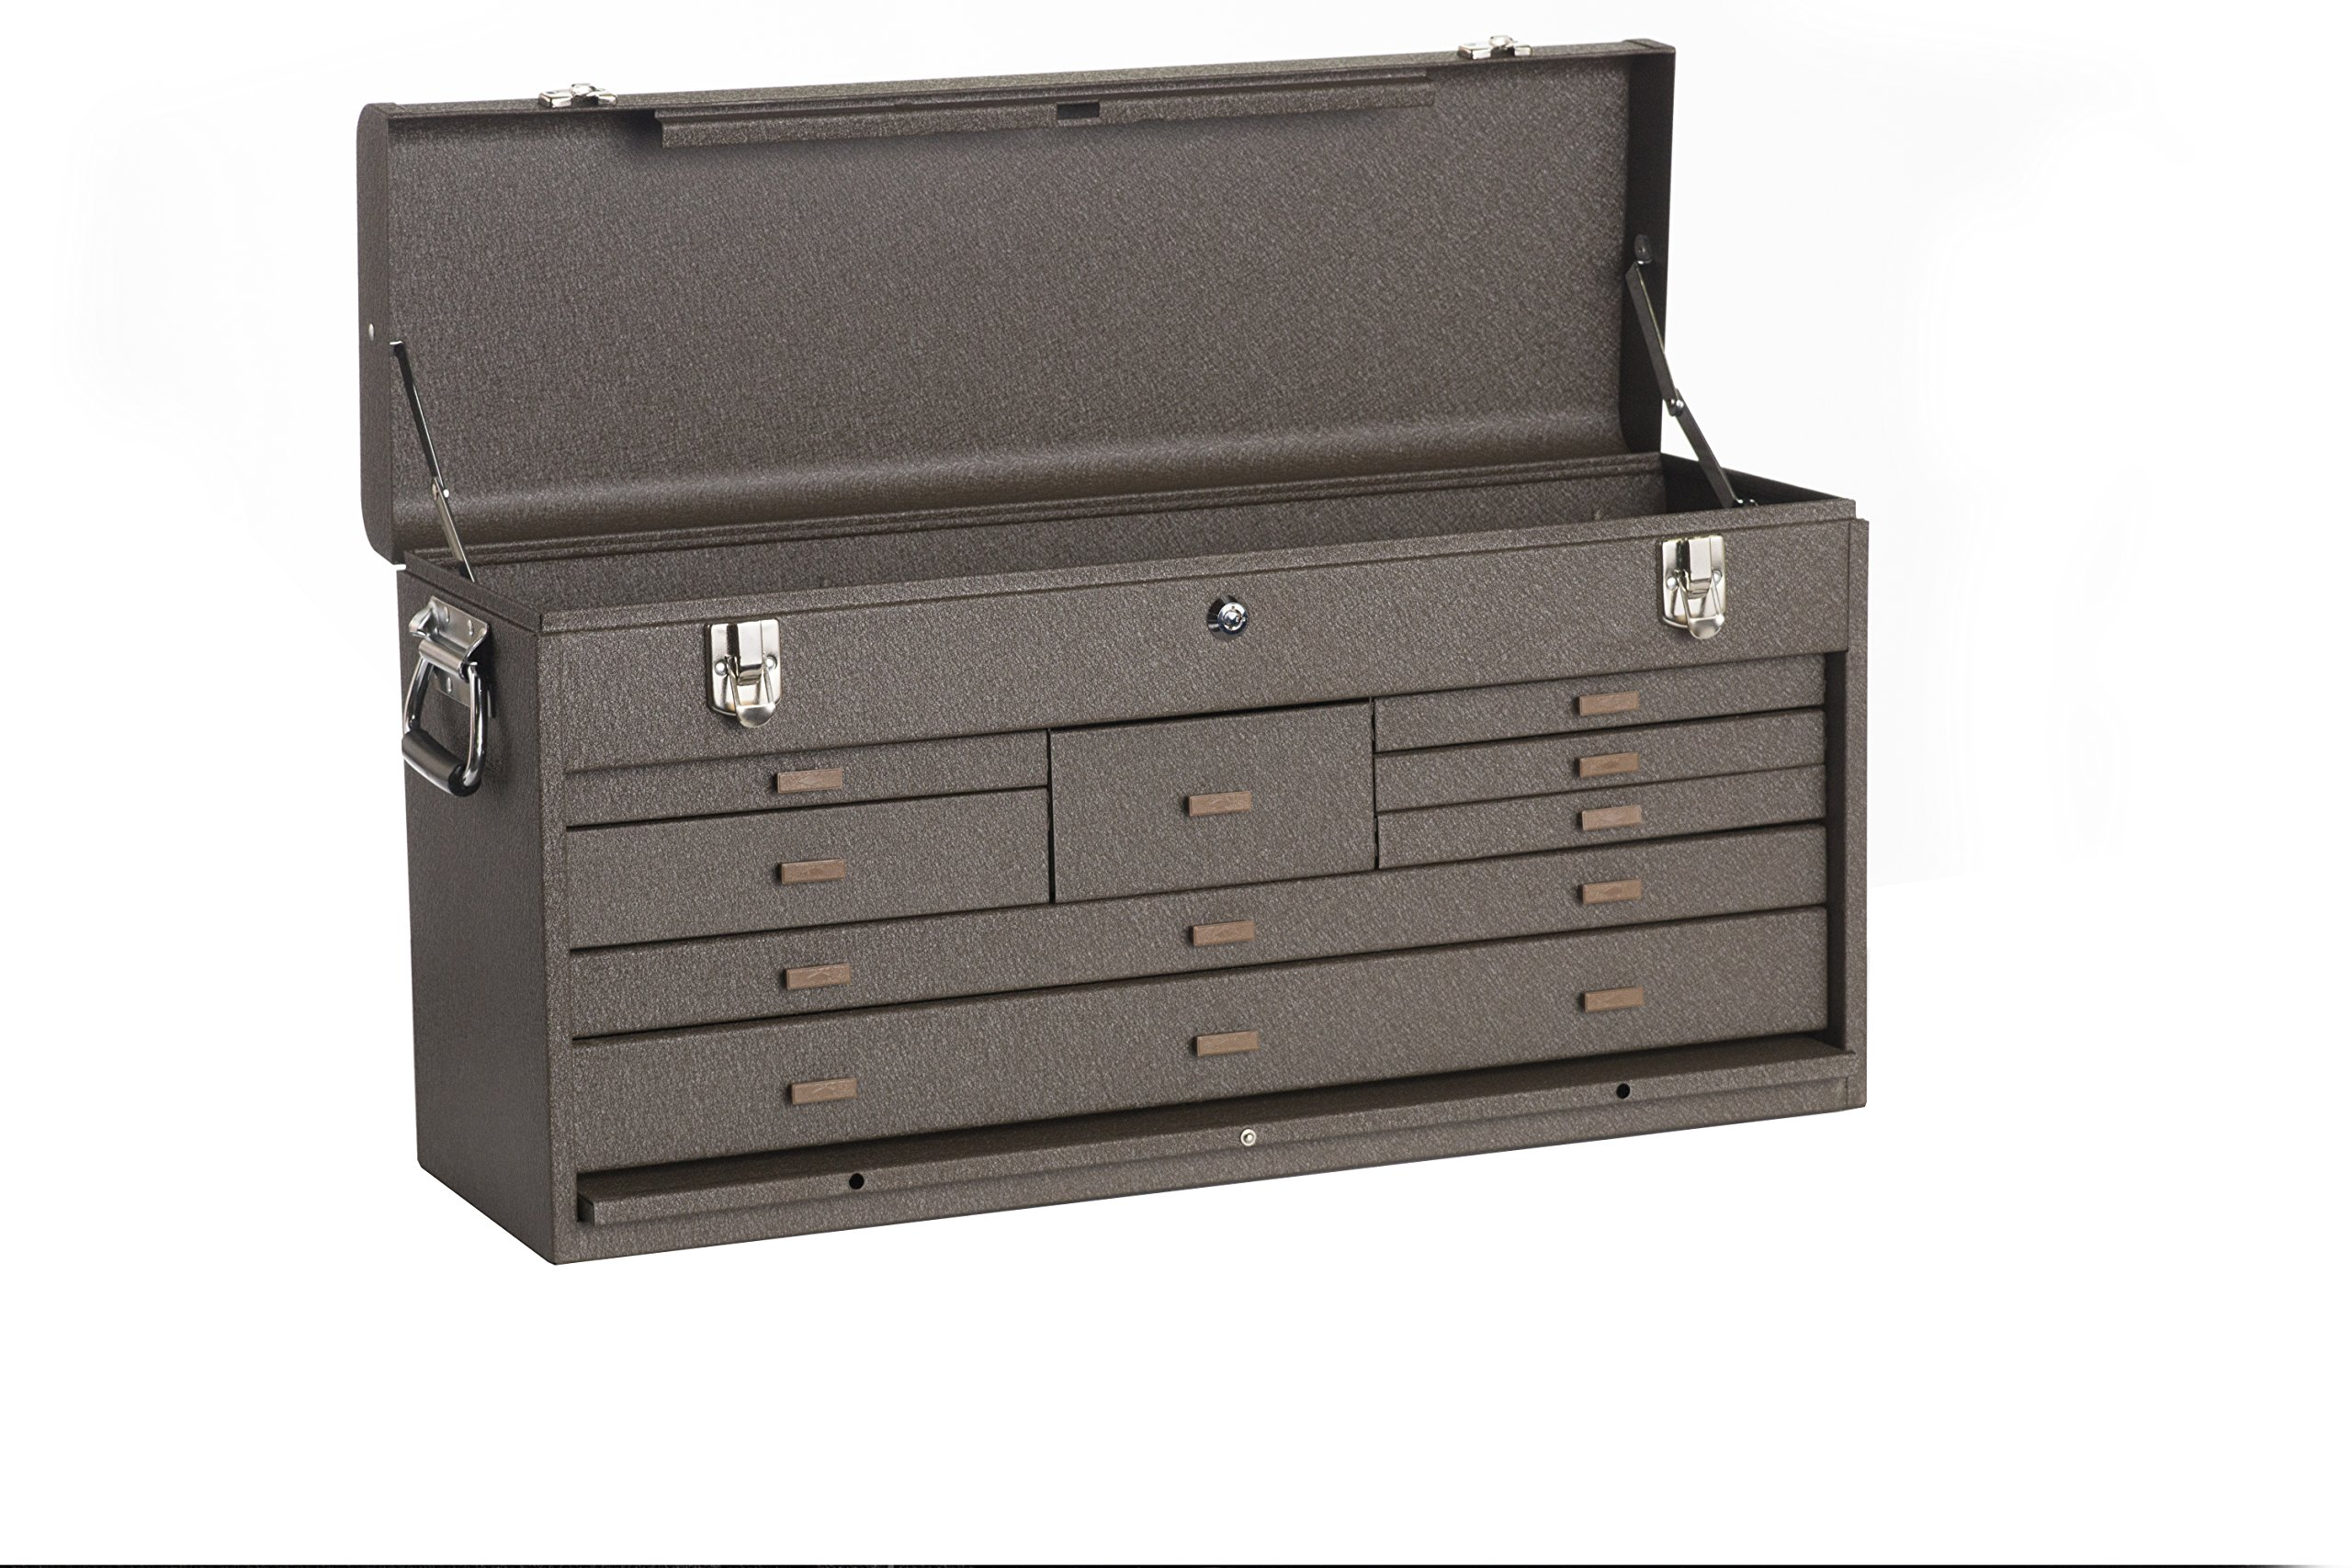 Kennedy Manufacturing 526B 8-Drawer Machinist's Chest with Friction Slides, Brown Wrinkle by Kennedy Manufacturing (Image #2)